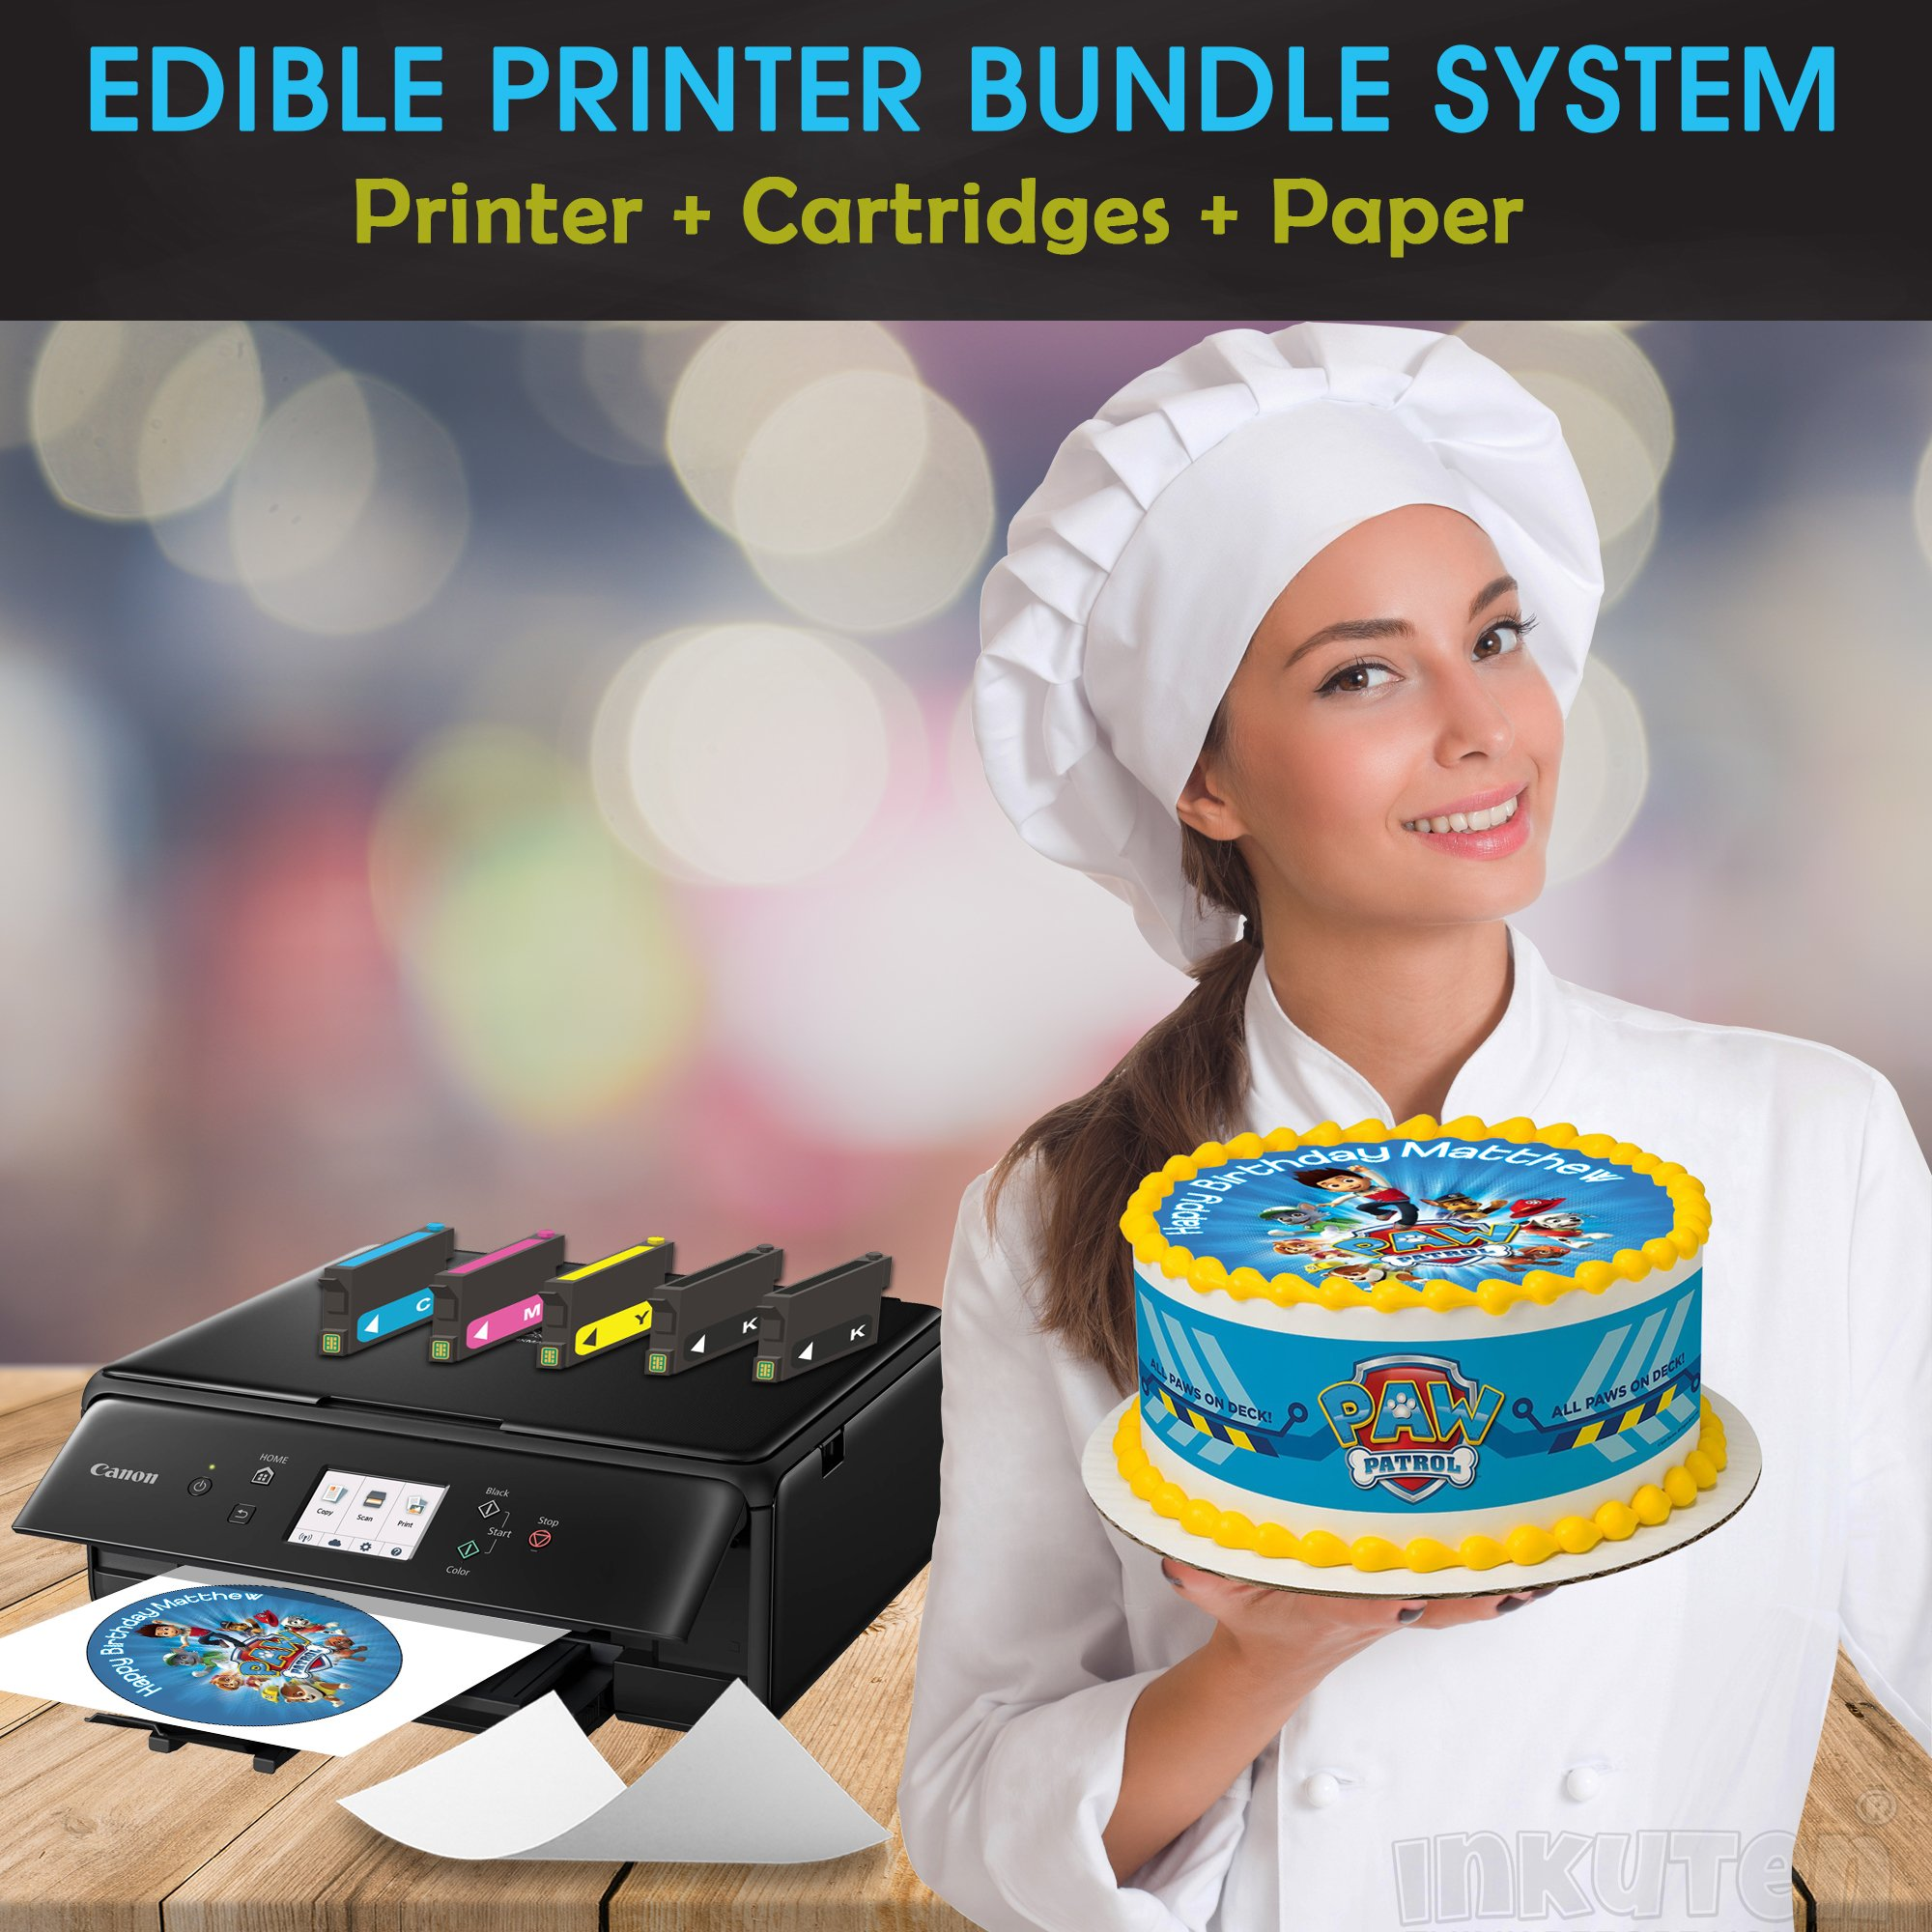 Canon Edible Printer Bundle System Comes with Edible Cartridges and 24 Frosting sheets Pack, Canon (Wireless + Scanner), Best Edible Image Printer, Edible Printer For Cakes By INKUTEN